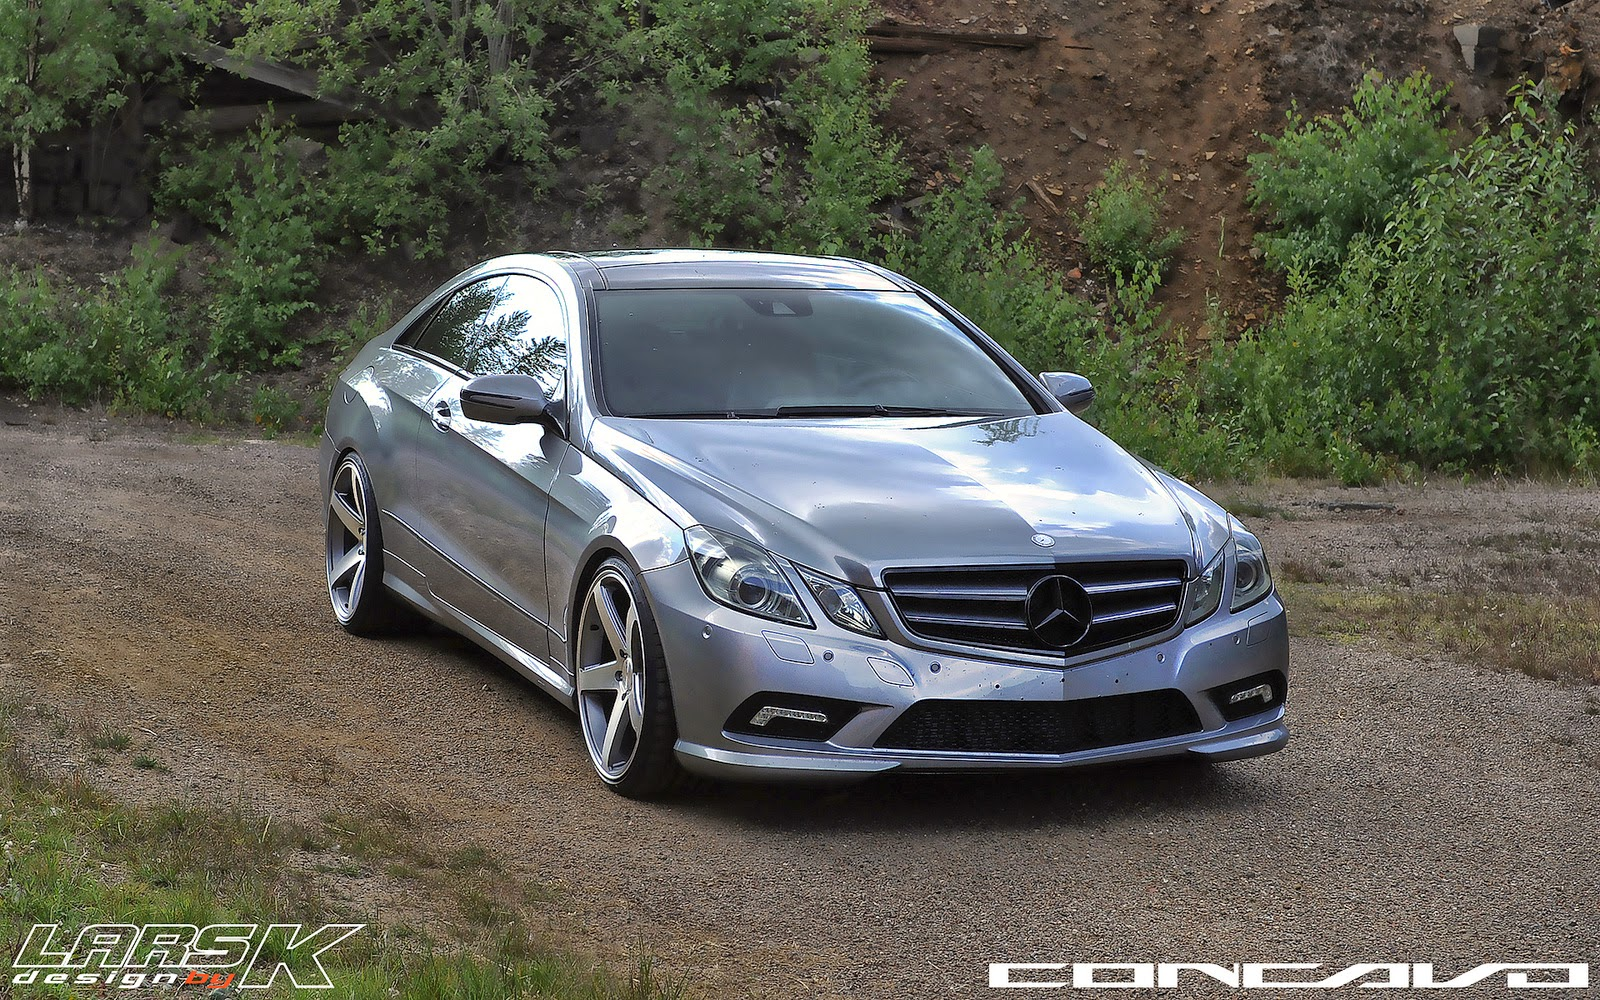 mercedes benz w207 e350 on concavo cw 5 benztuning